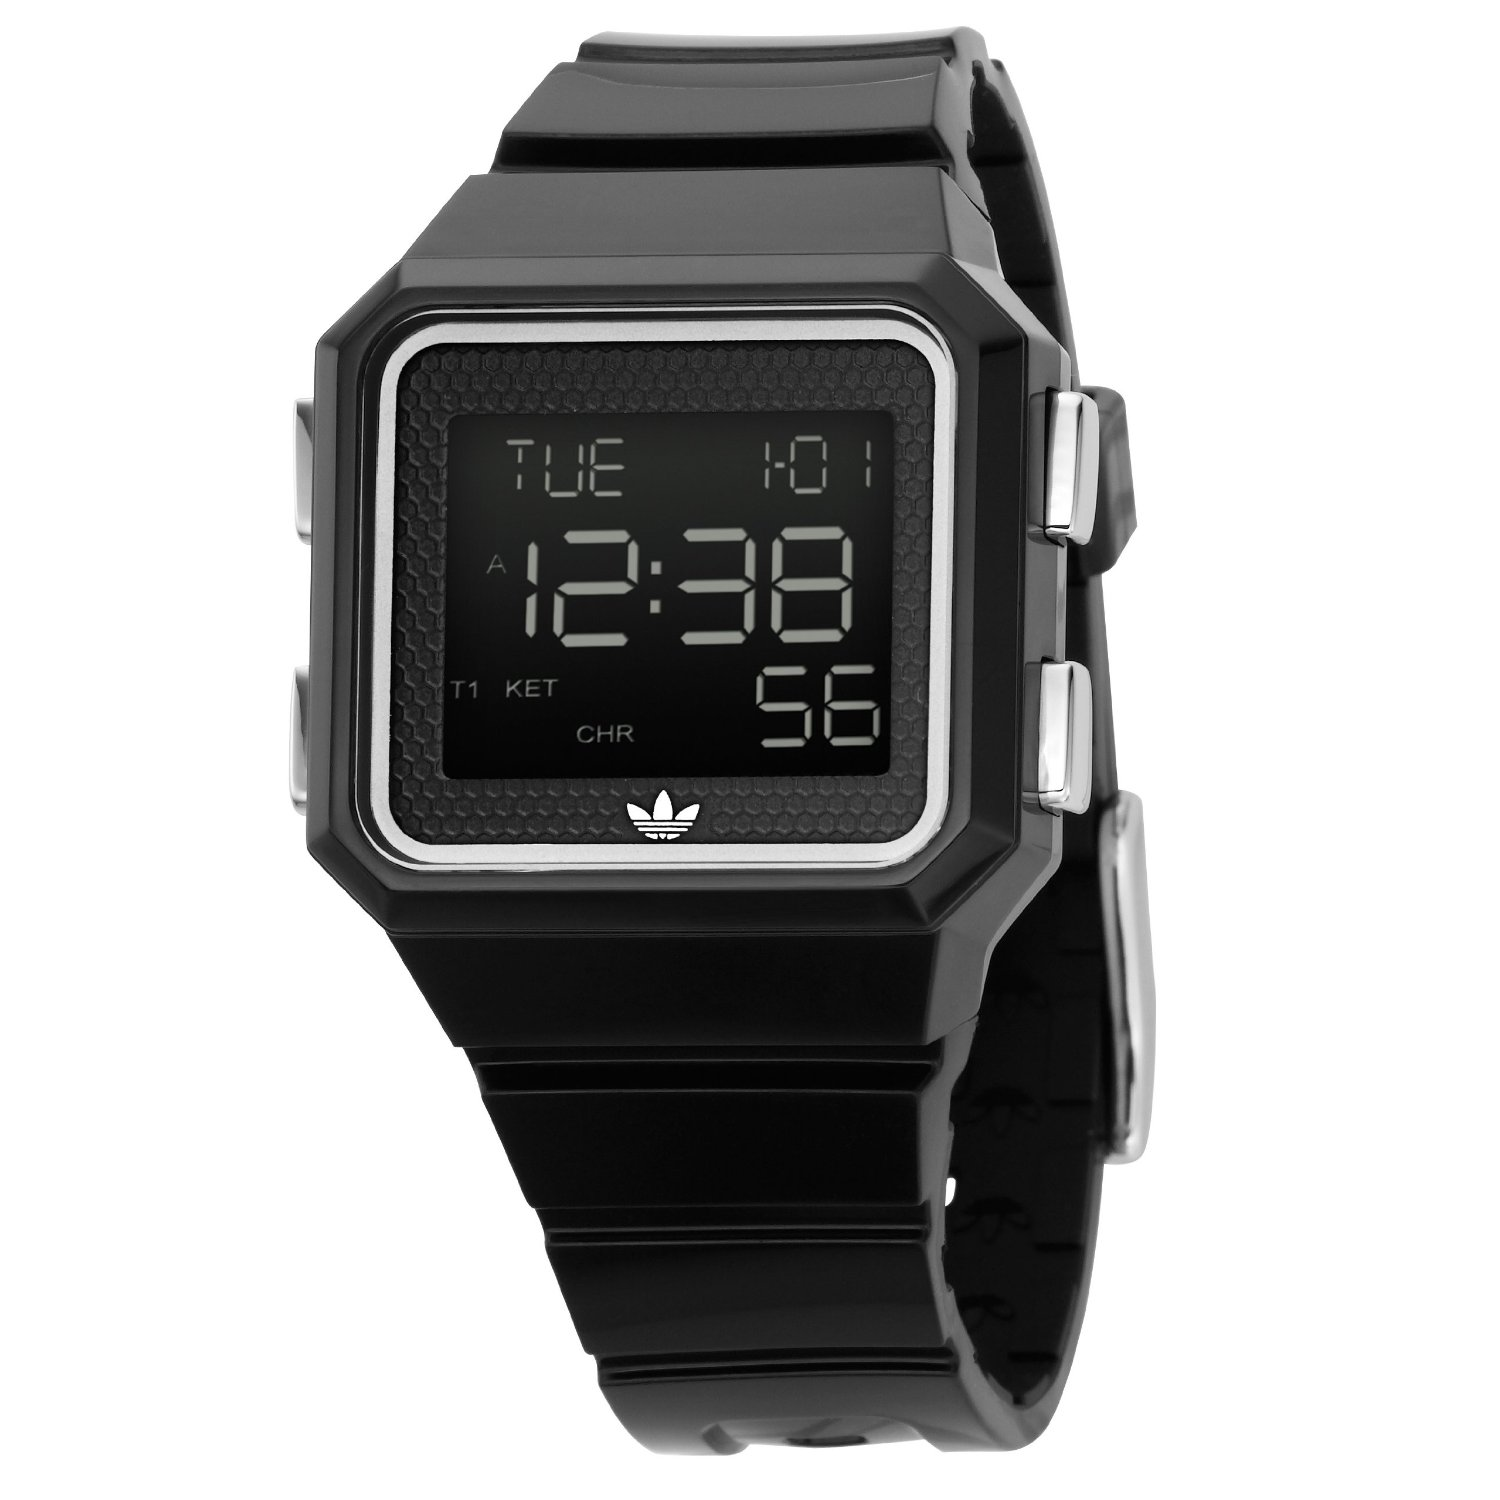 Unisex Black Digital Watch ADH4003